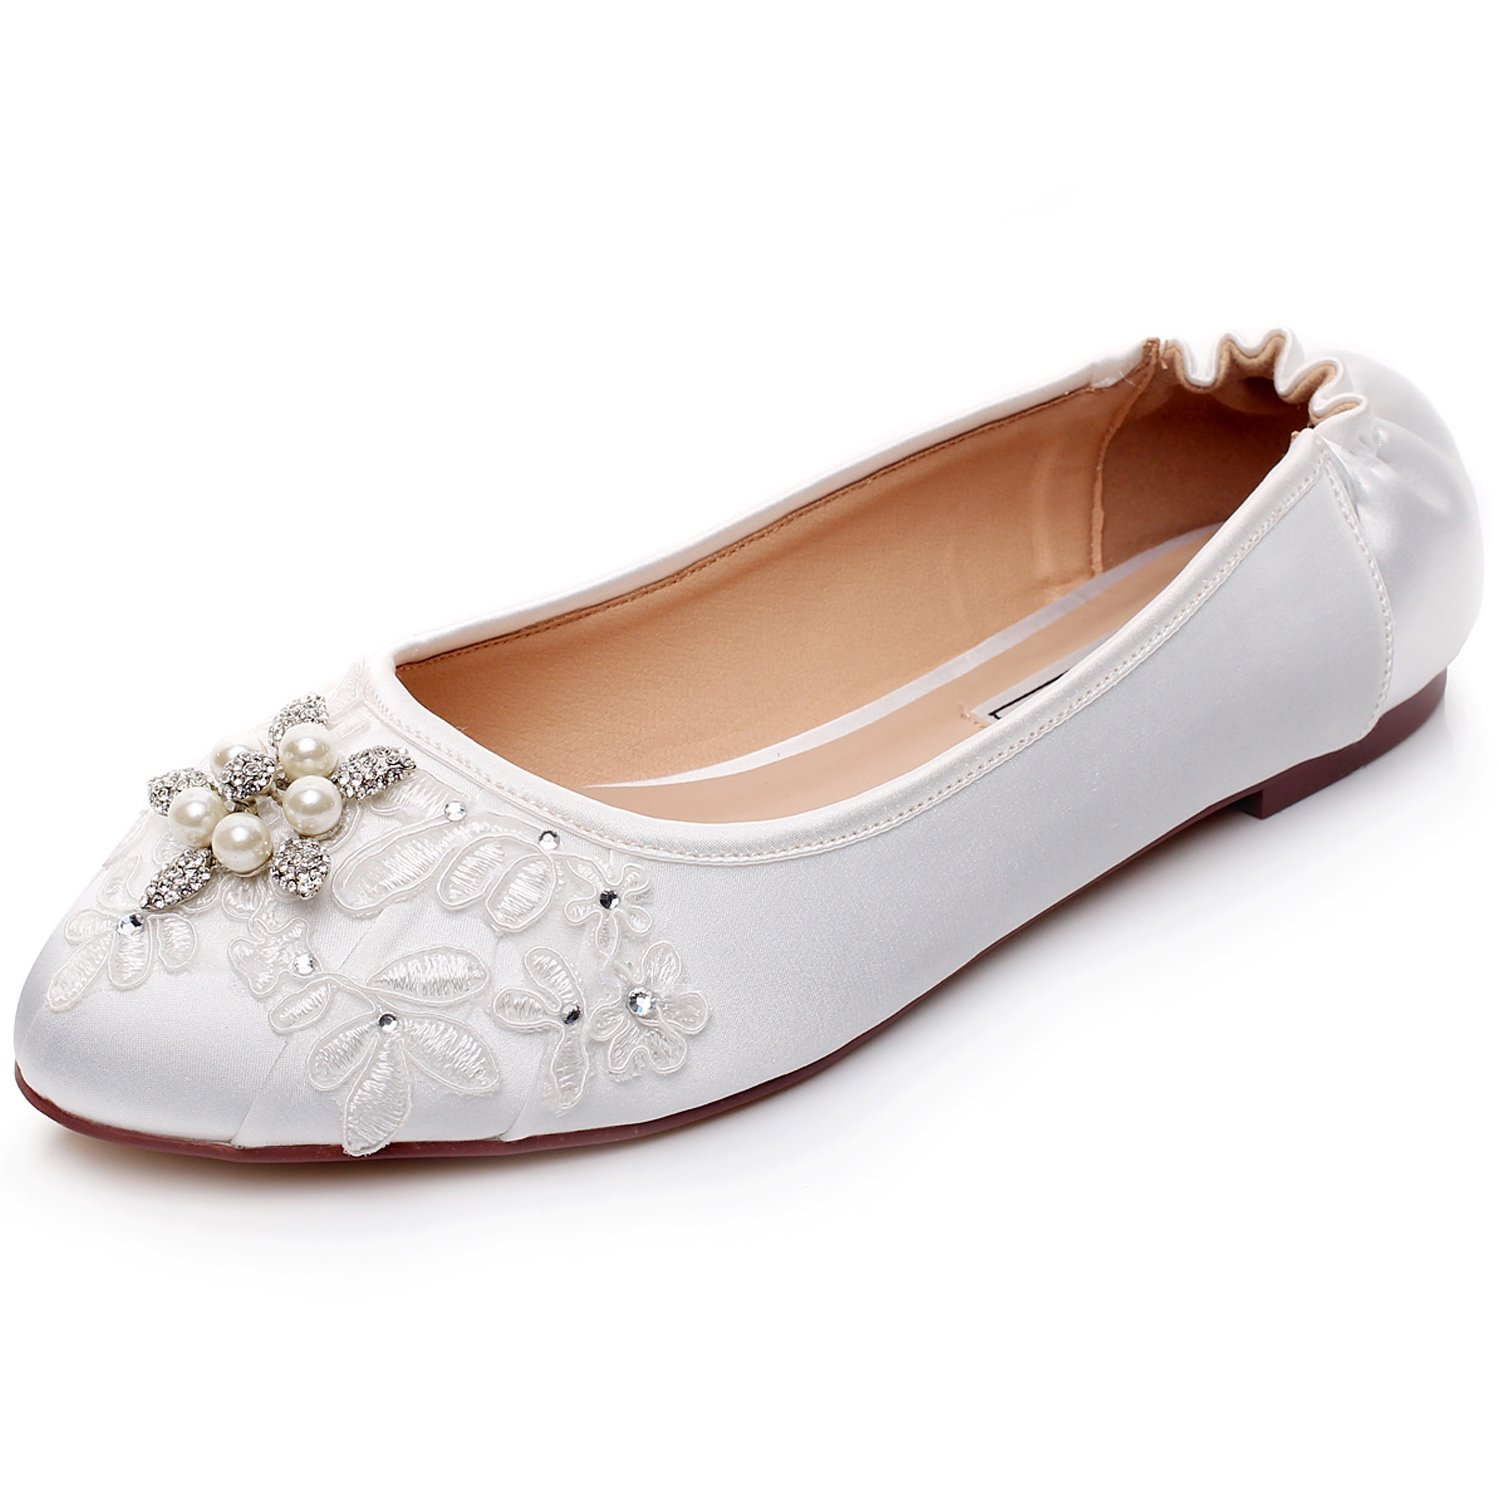 LUXVEER White Satin and Lace Flat Shoes Wedding Flats Closed Toe Elastic Flats with Rhinestone Crystals,RS-9802-Closed-Toe B01M4KAF45 5 B(M) US|White